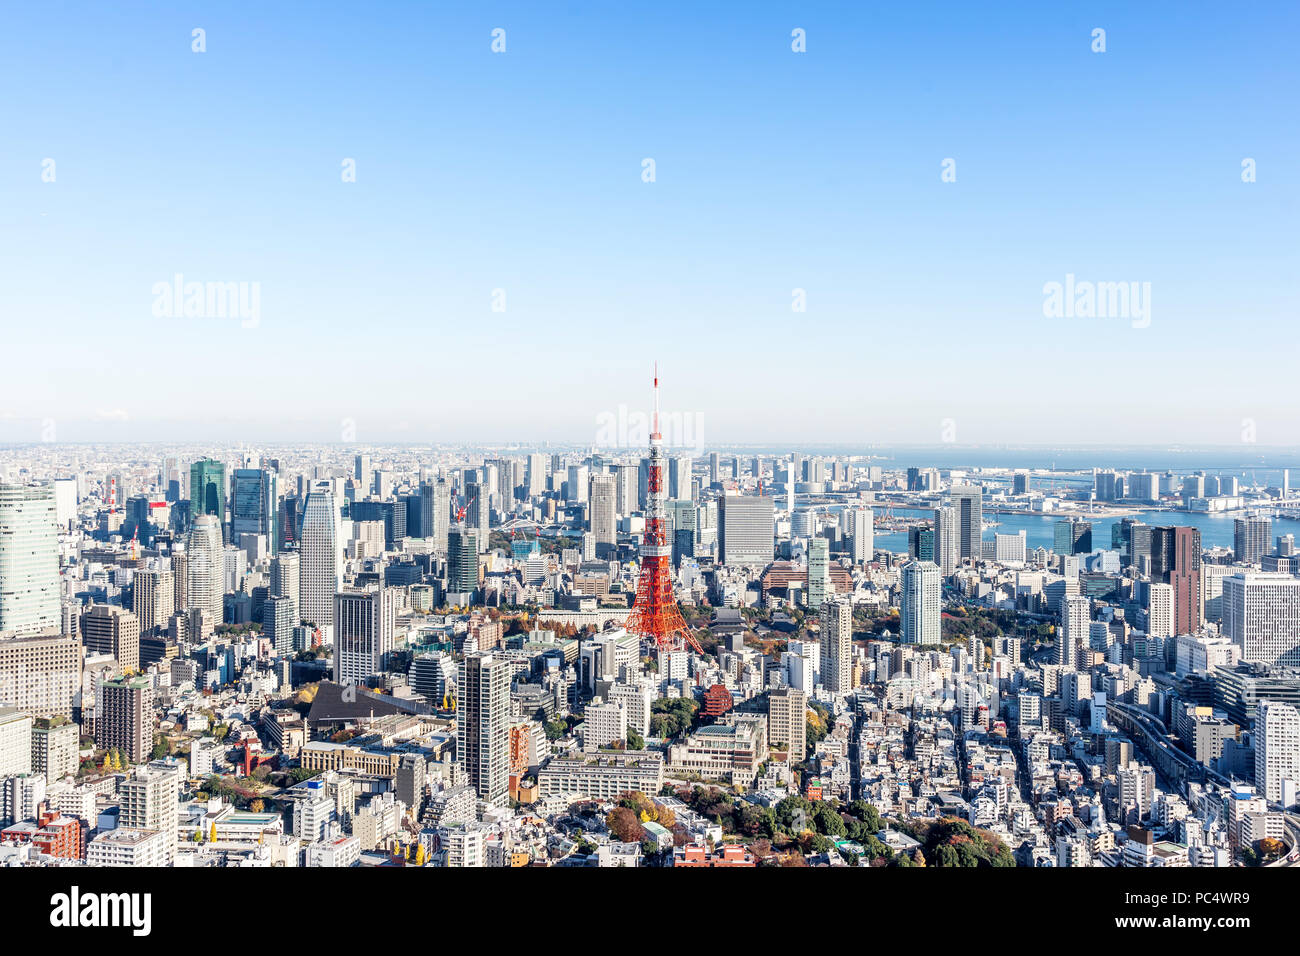 Asia Business concept for real estate and corporate construction - panoramic modern city skyline bird eye aerial view of tokyo tower and odaiba under  - Stock Image